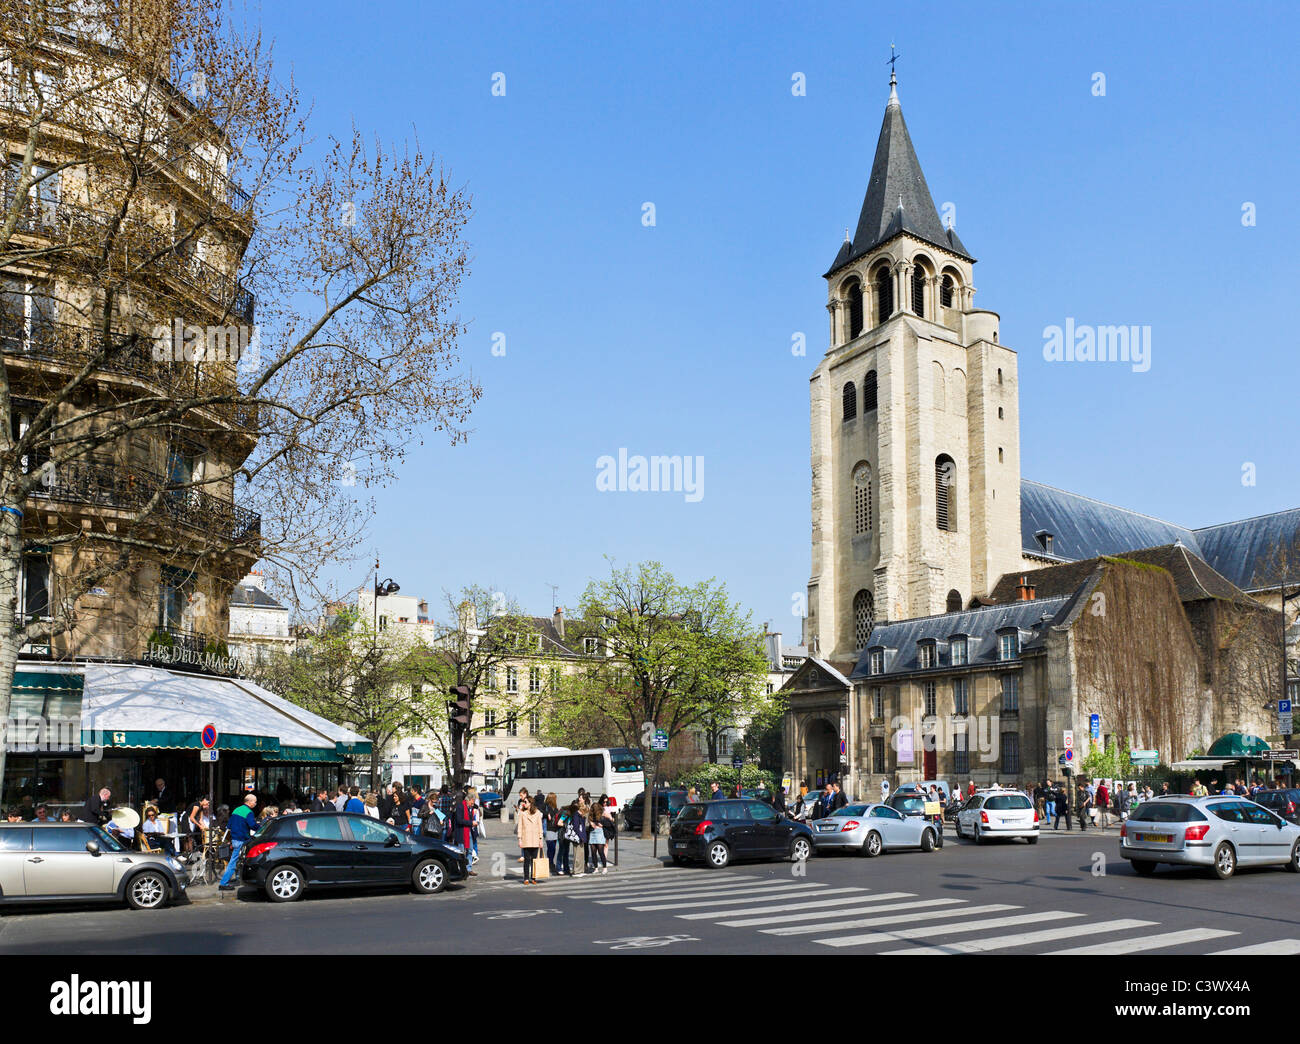 a04d4fa5c Place St Germain des Pres with Les Deux Magots cafe to the left and the  church of Saint Germain to the right